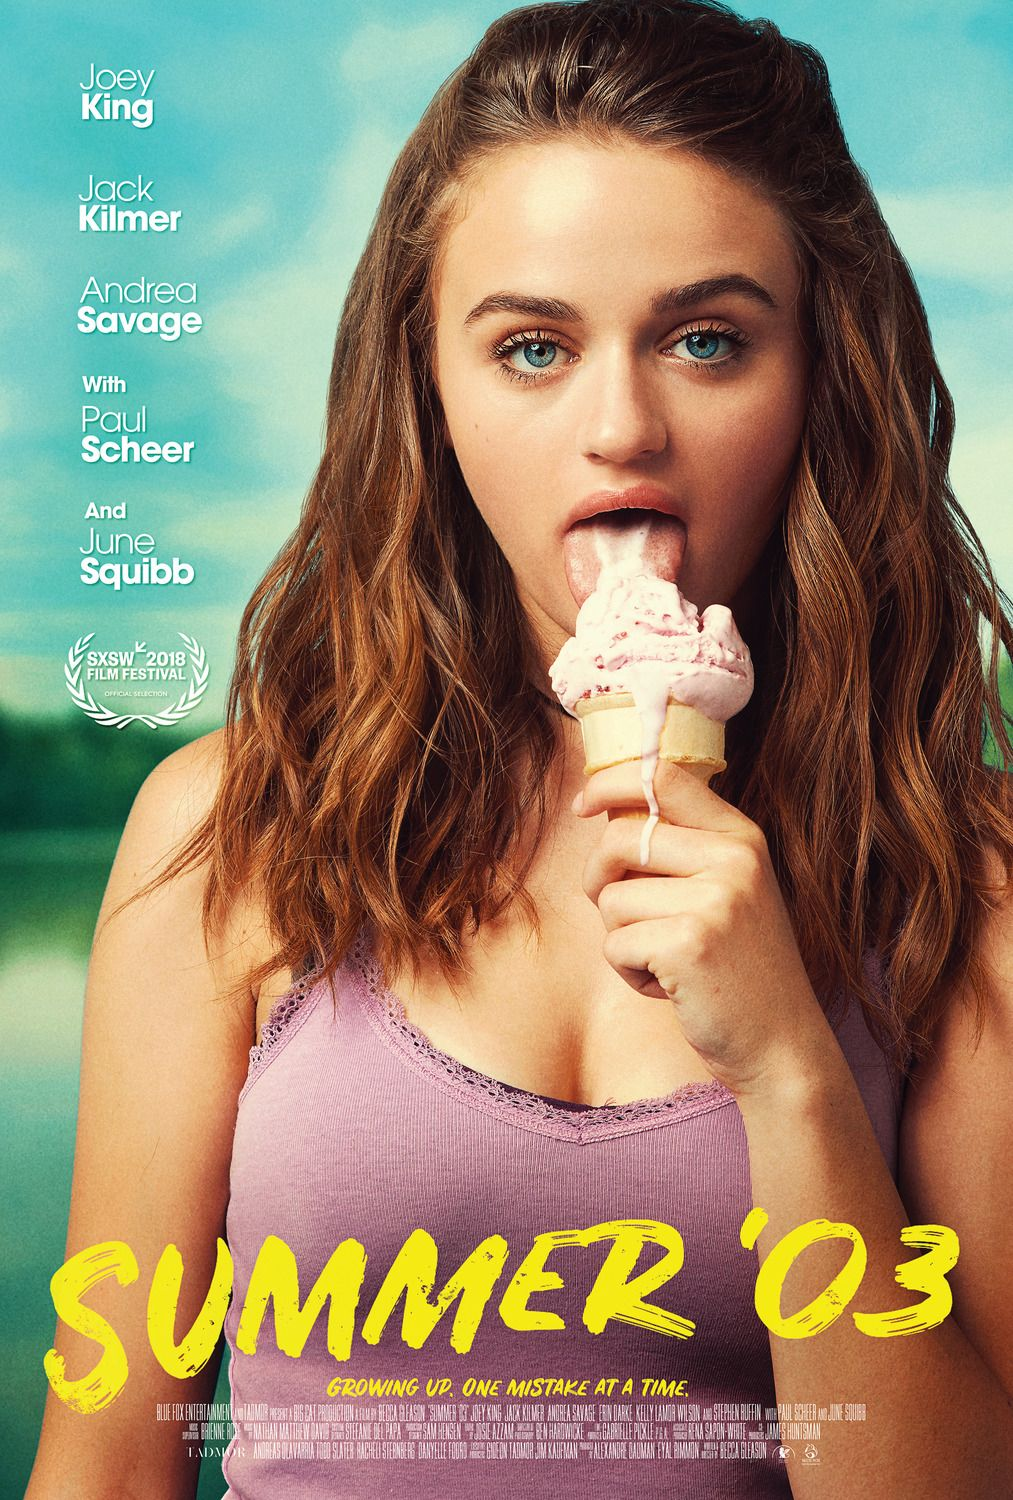 Return To The Main Poster Page For Summer 03 Joey King Summer Of Love Full Movies